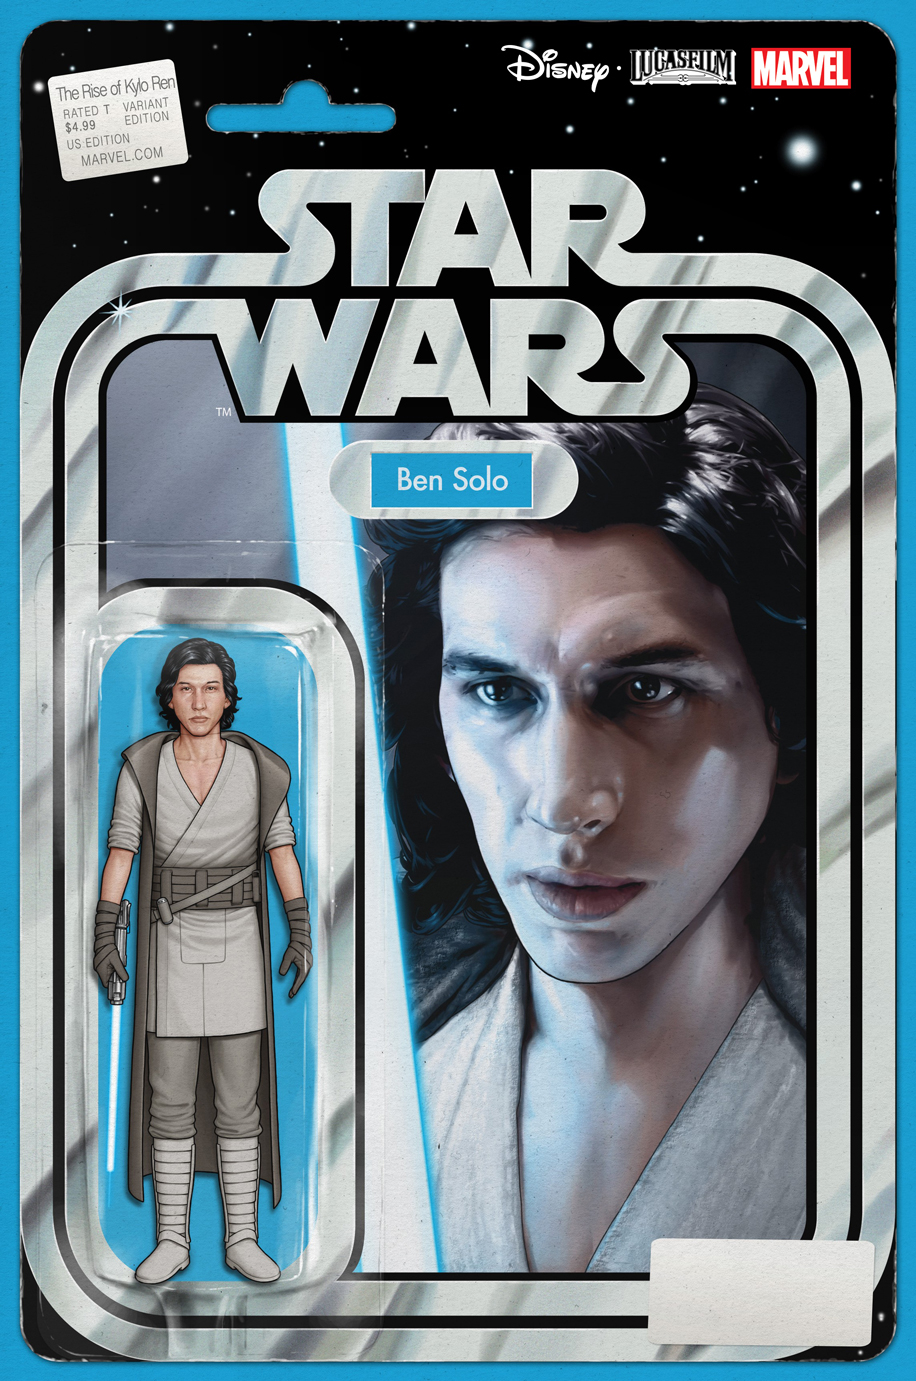 STAR WARS RISE KYLO REN #1 (OF 4) CHRISTOPHER ACTION FIGURE